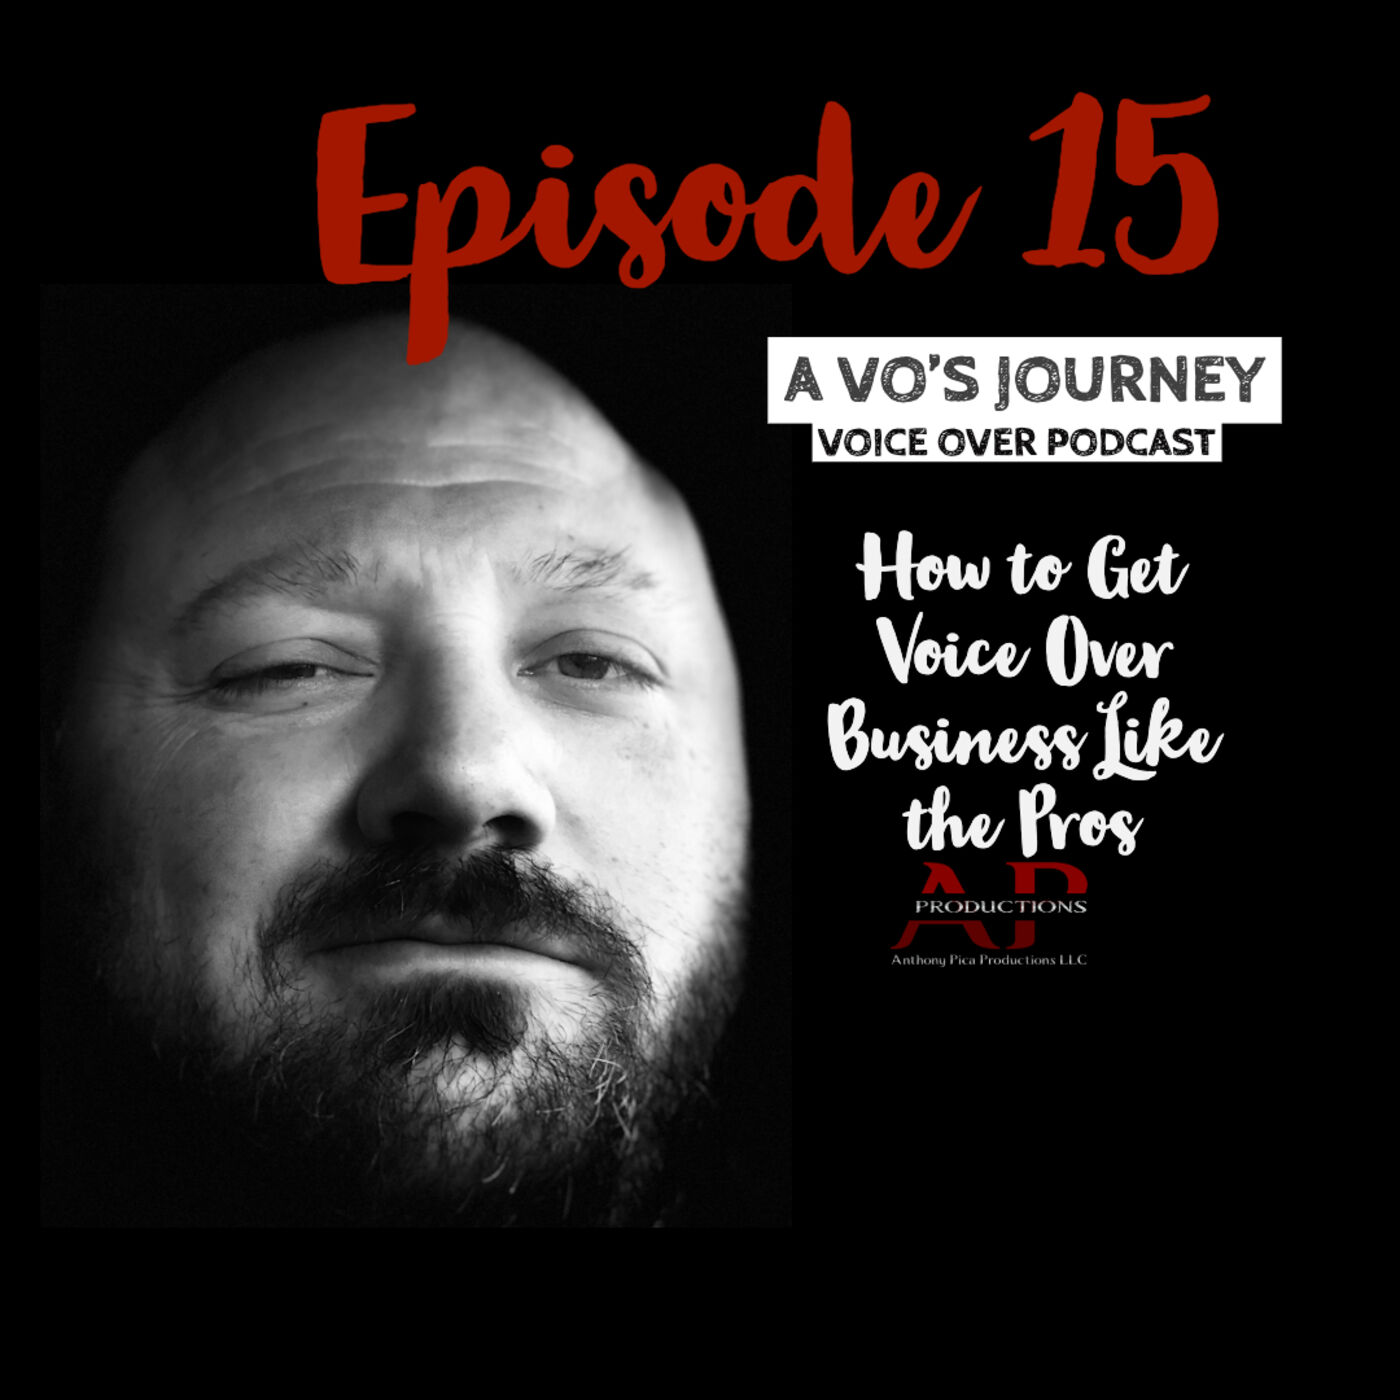 Ep. 15: How to Get Voice Over Business Like the Pros